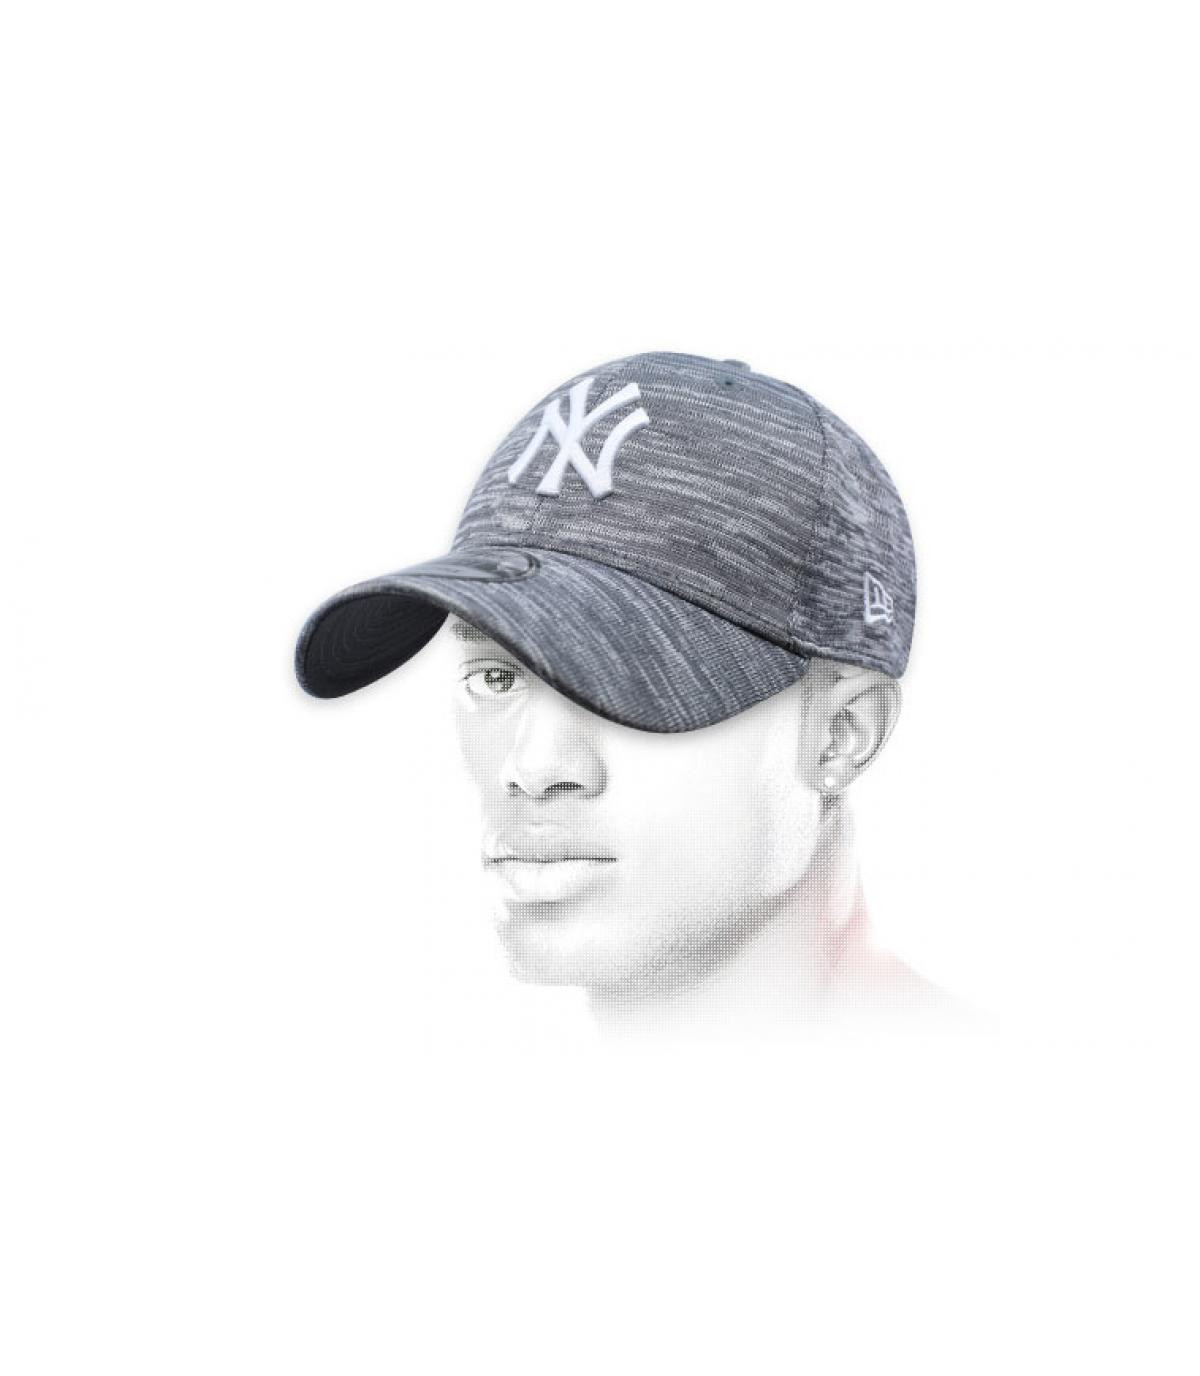 casquette NY gris chiné Engineered